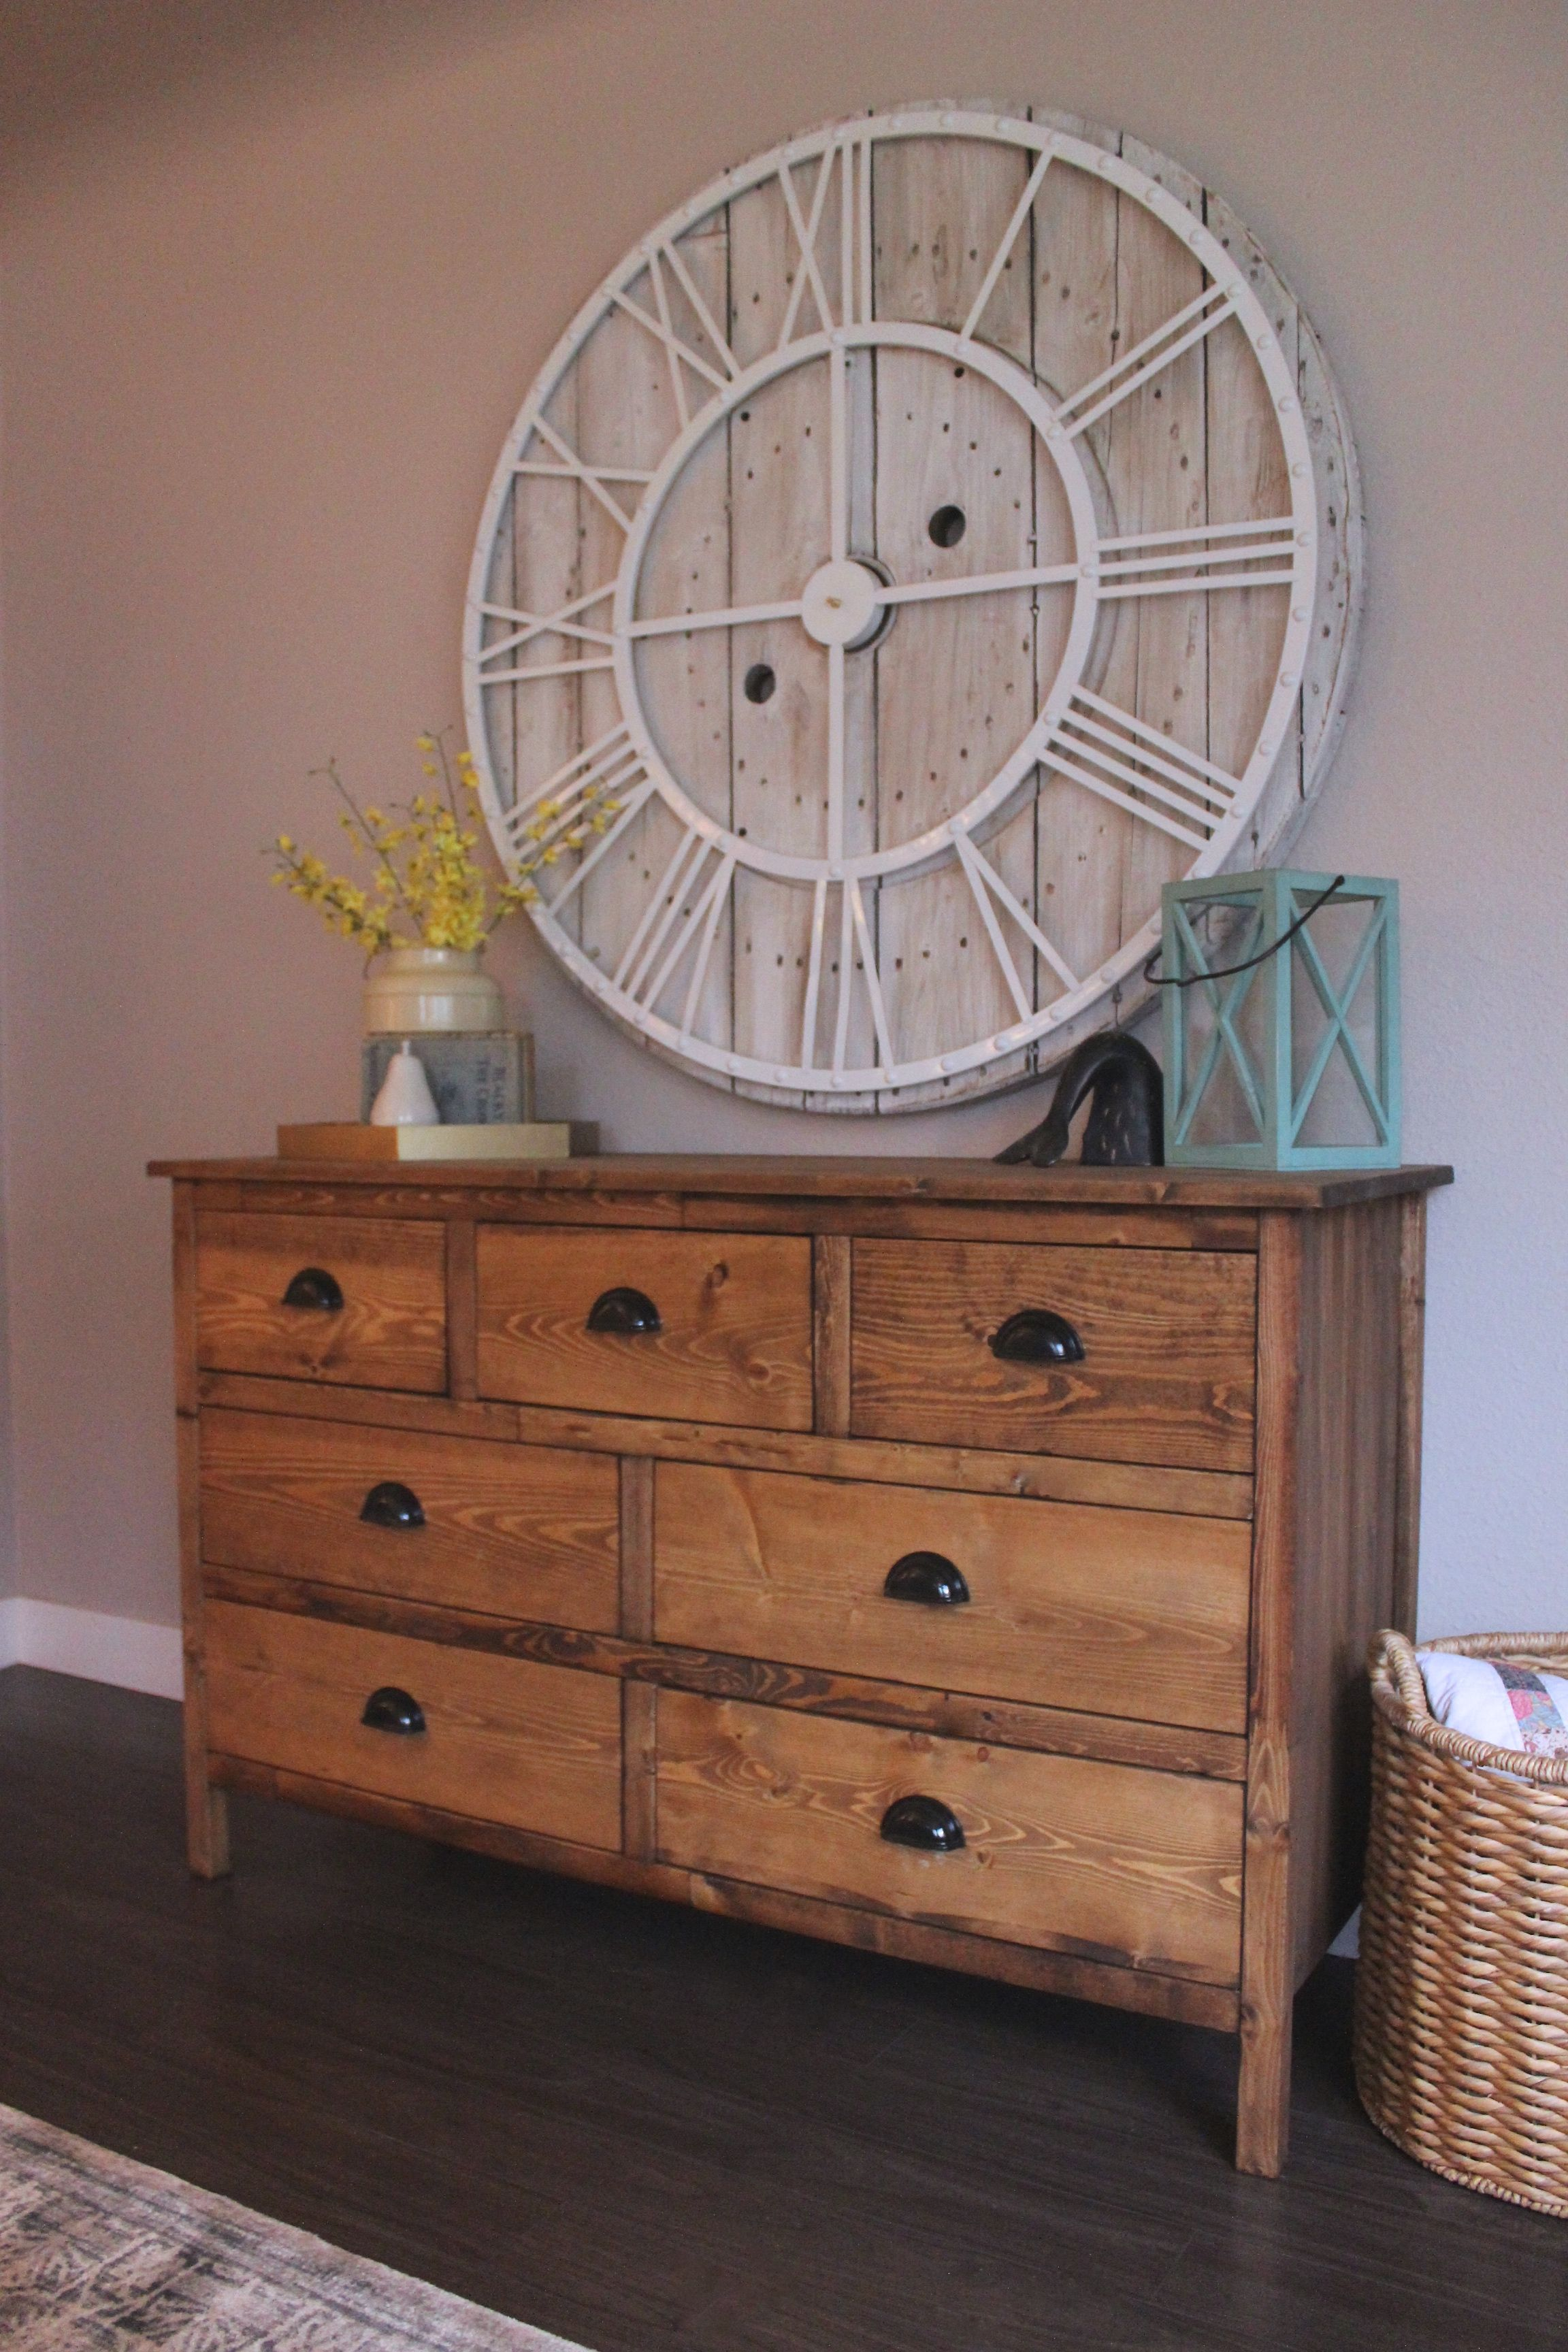 Rustic 7 Drawer Dresser   Do It Yourself Home Projects From Ana White